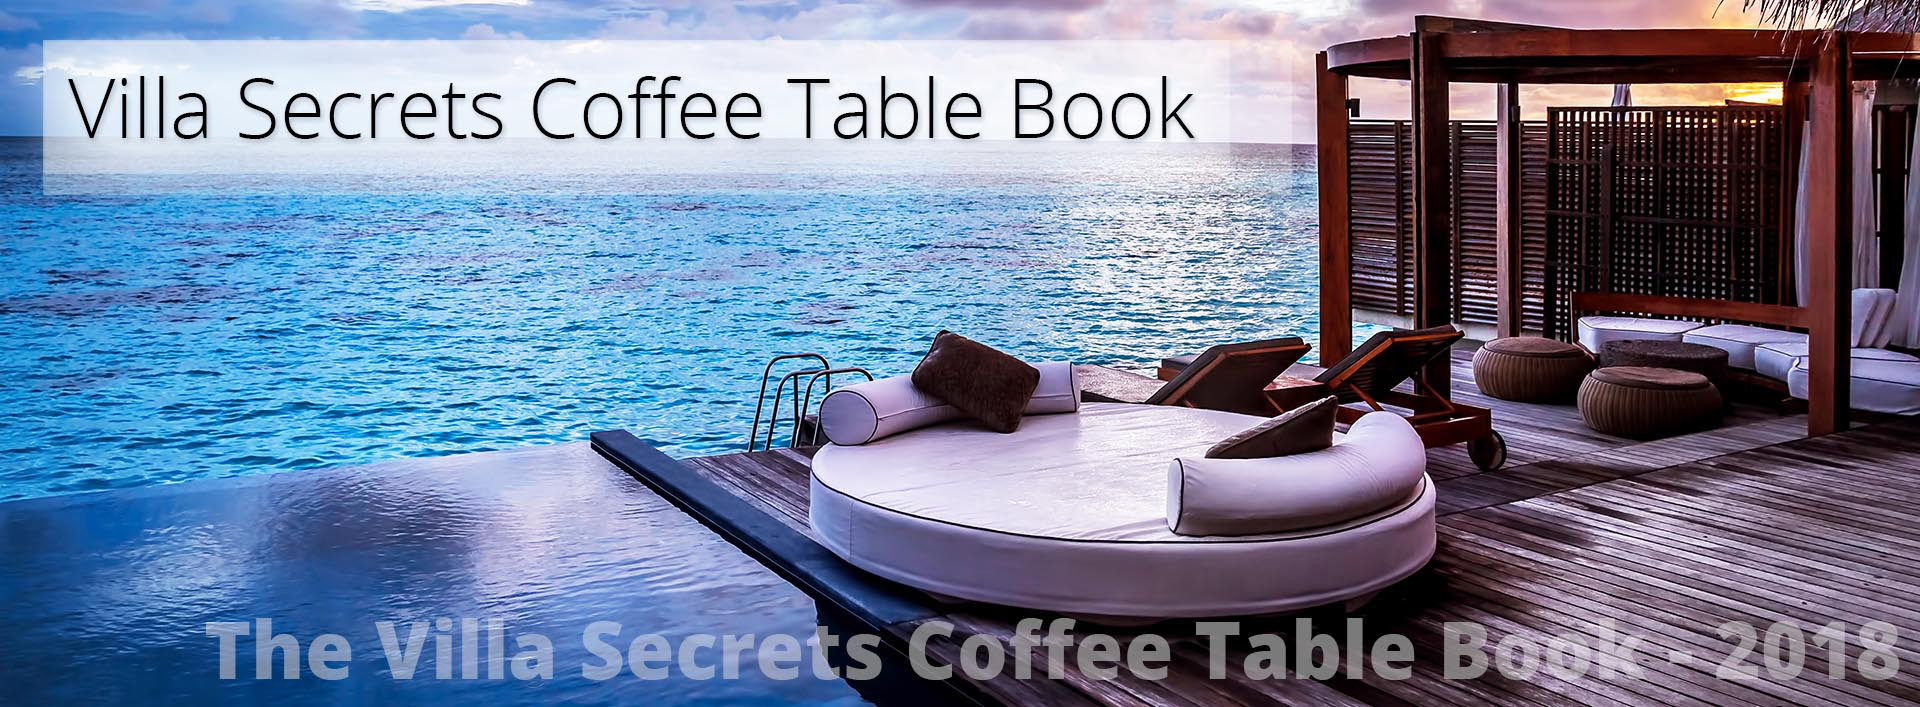 Villa Secrets Coffee Table Book